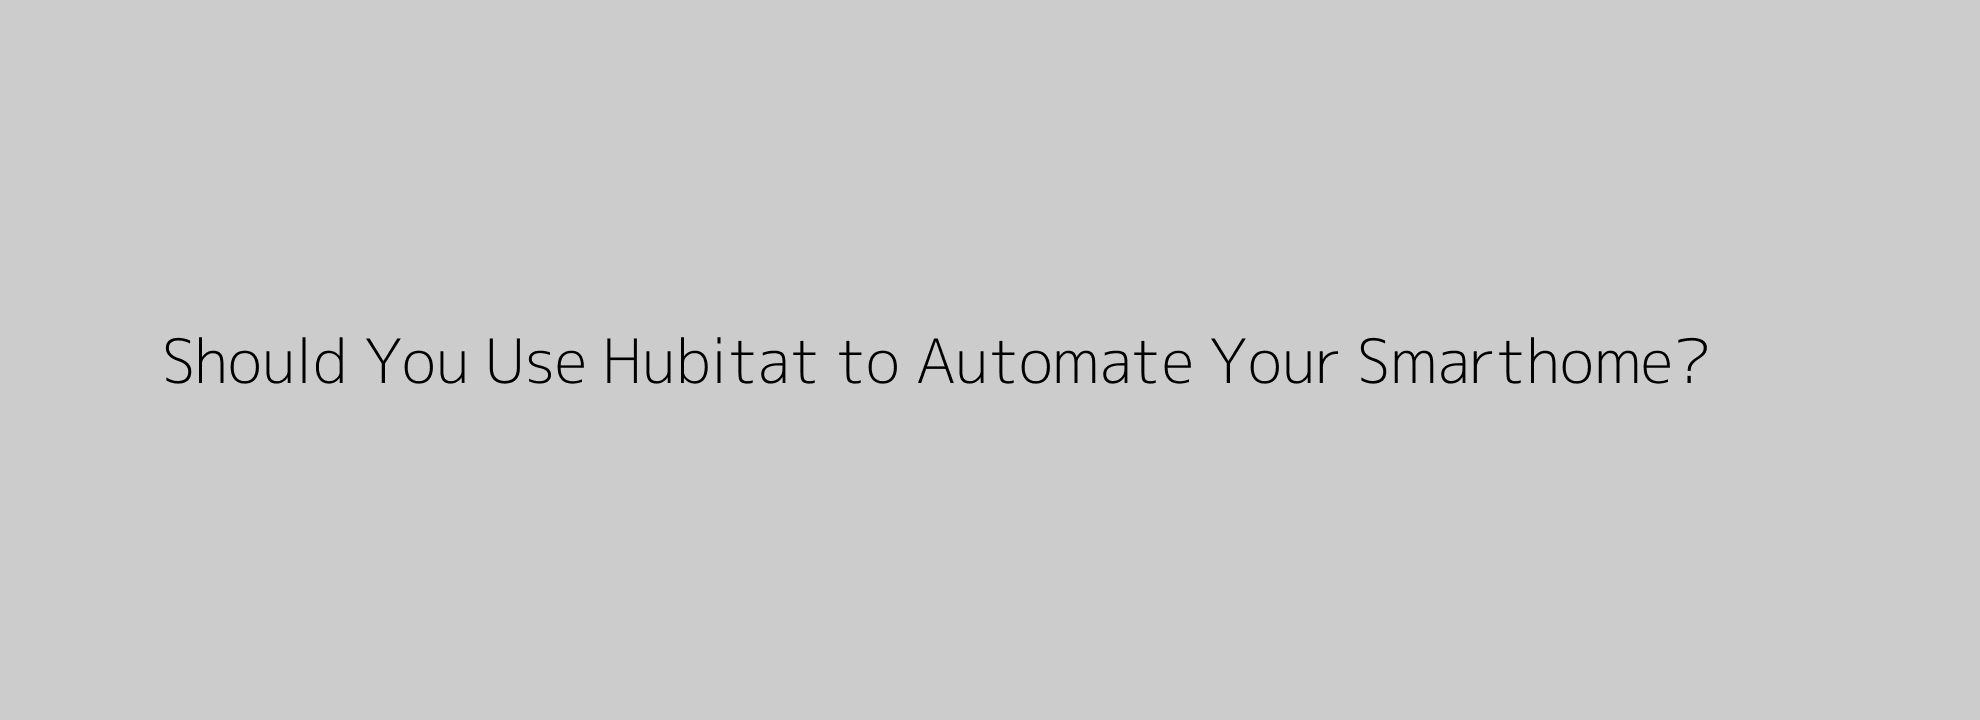 Should You Use Hubitat to Automate Your Smarthome?